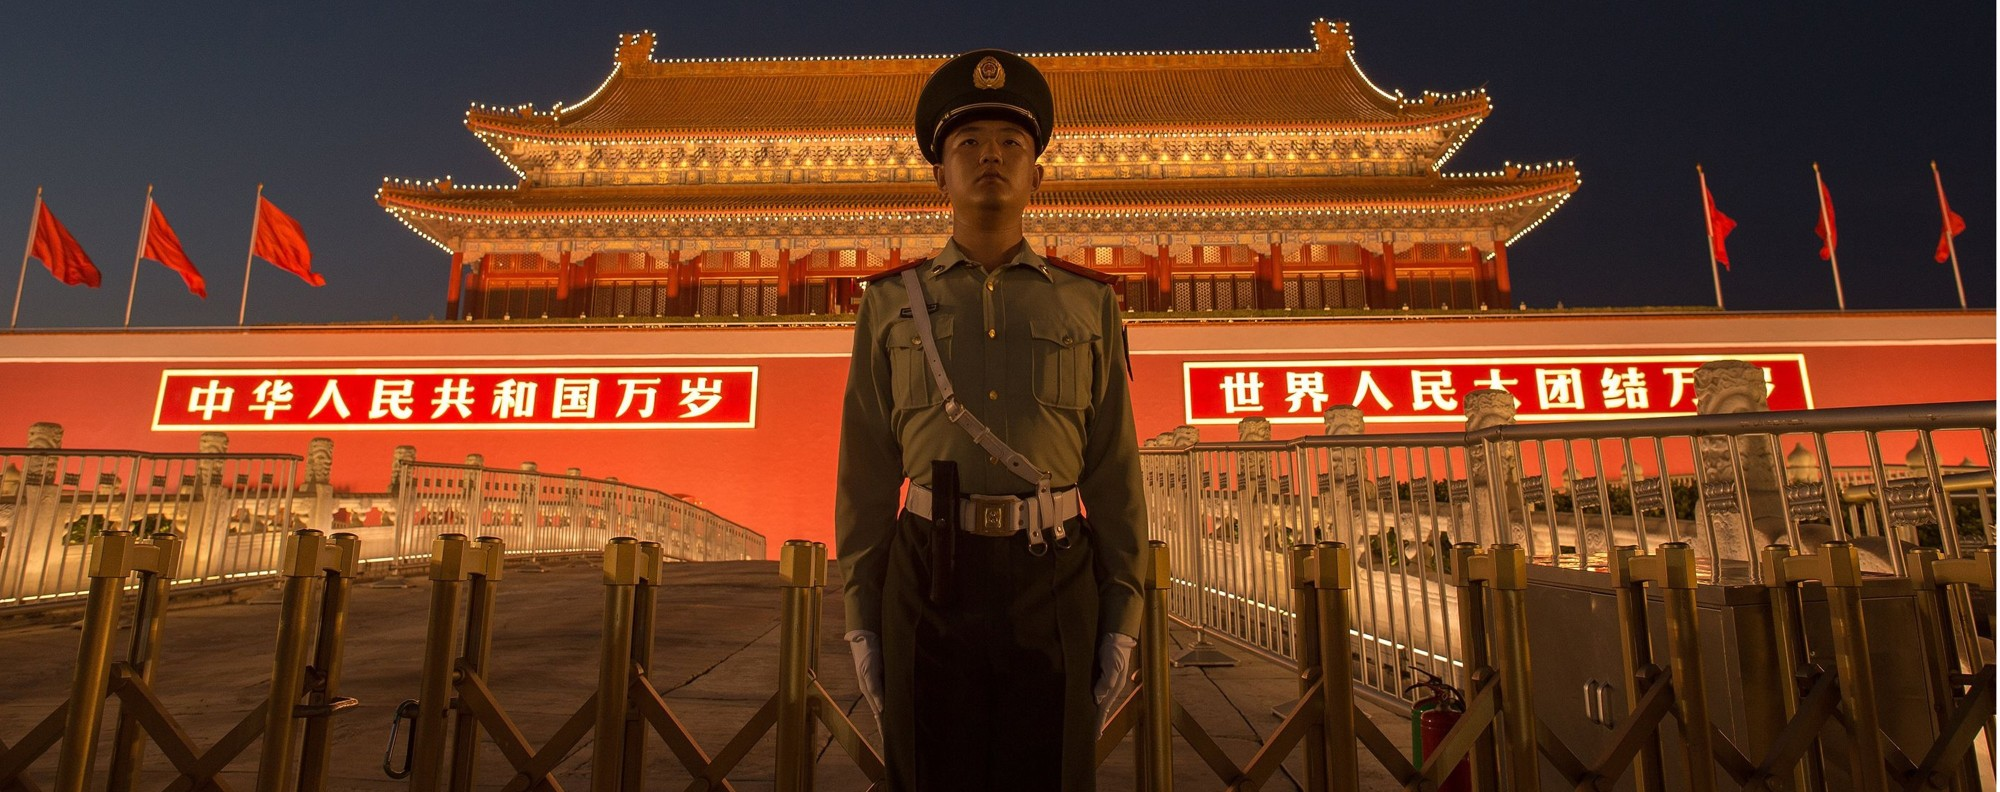 The front gate of the Forbidden City in Beijing. Photo: AFP